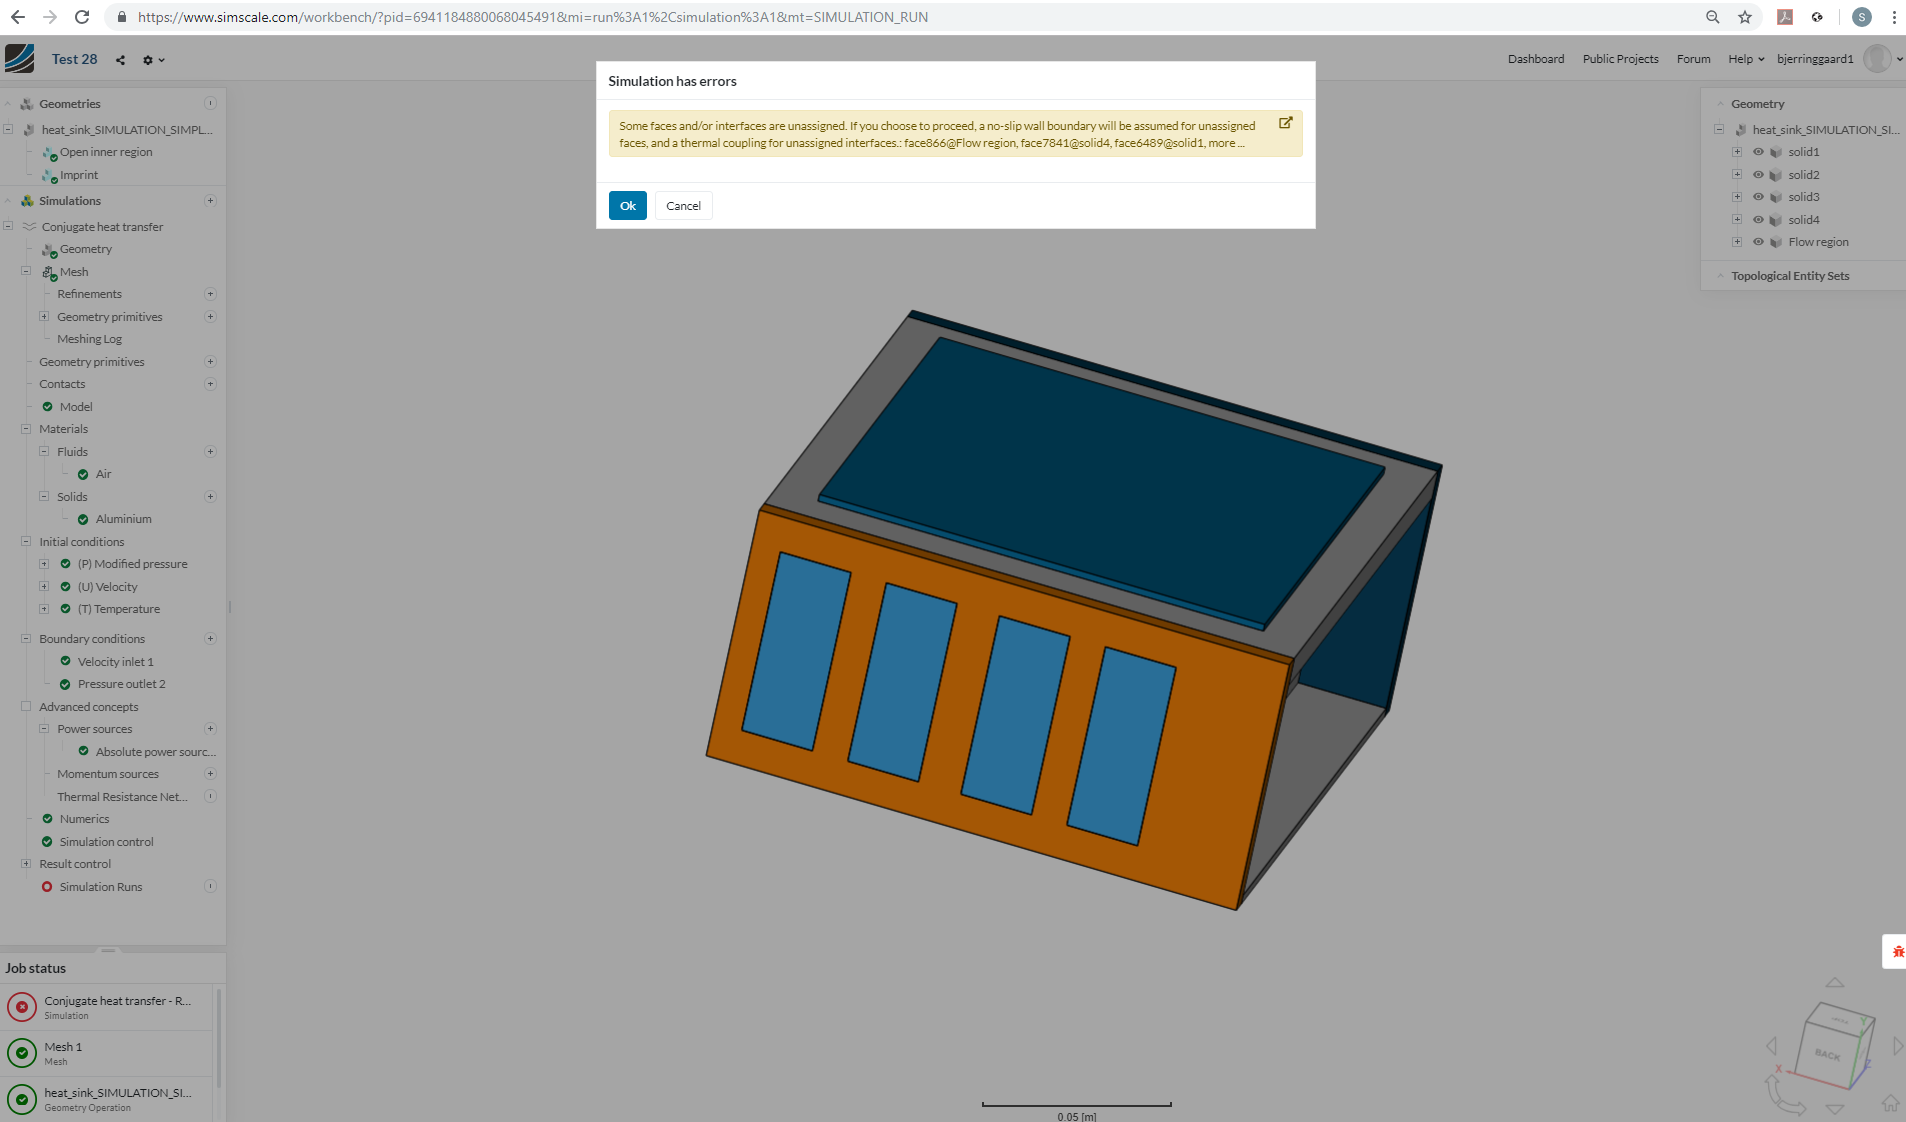 Simulation has errors - Project Support - SimScale CAE Forum